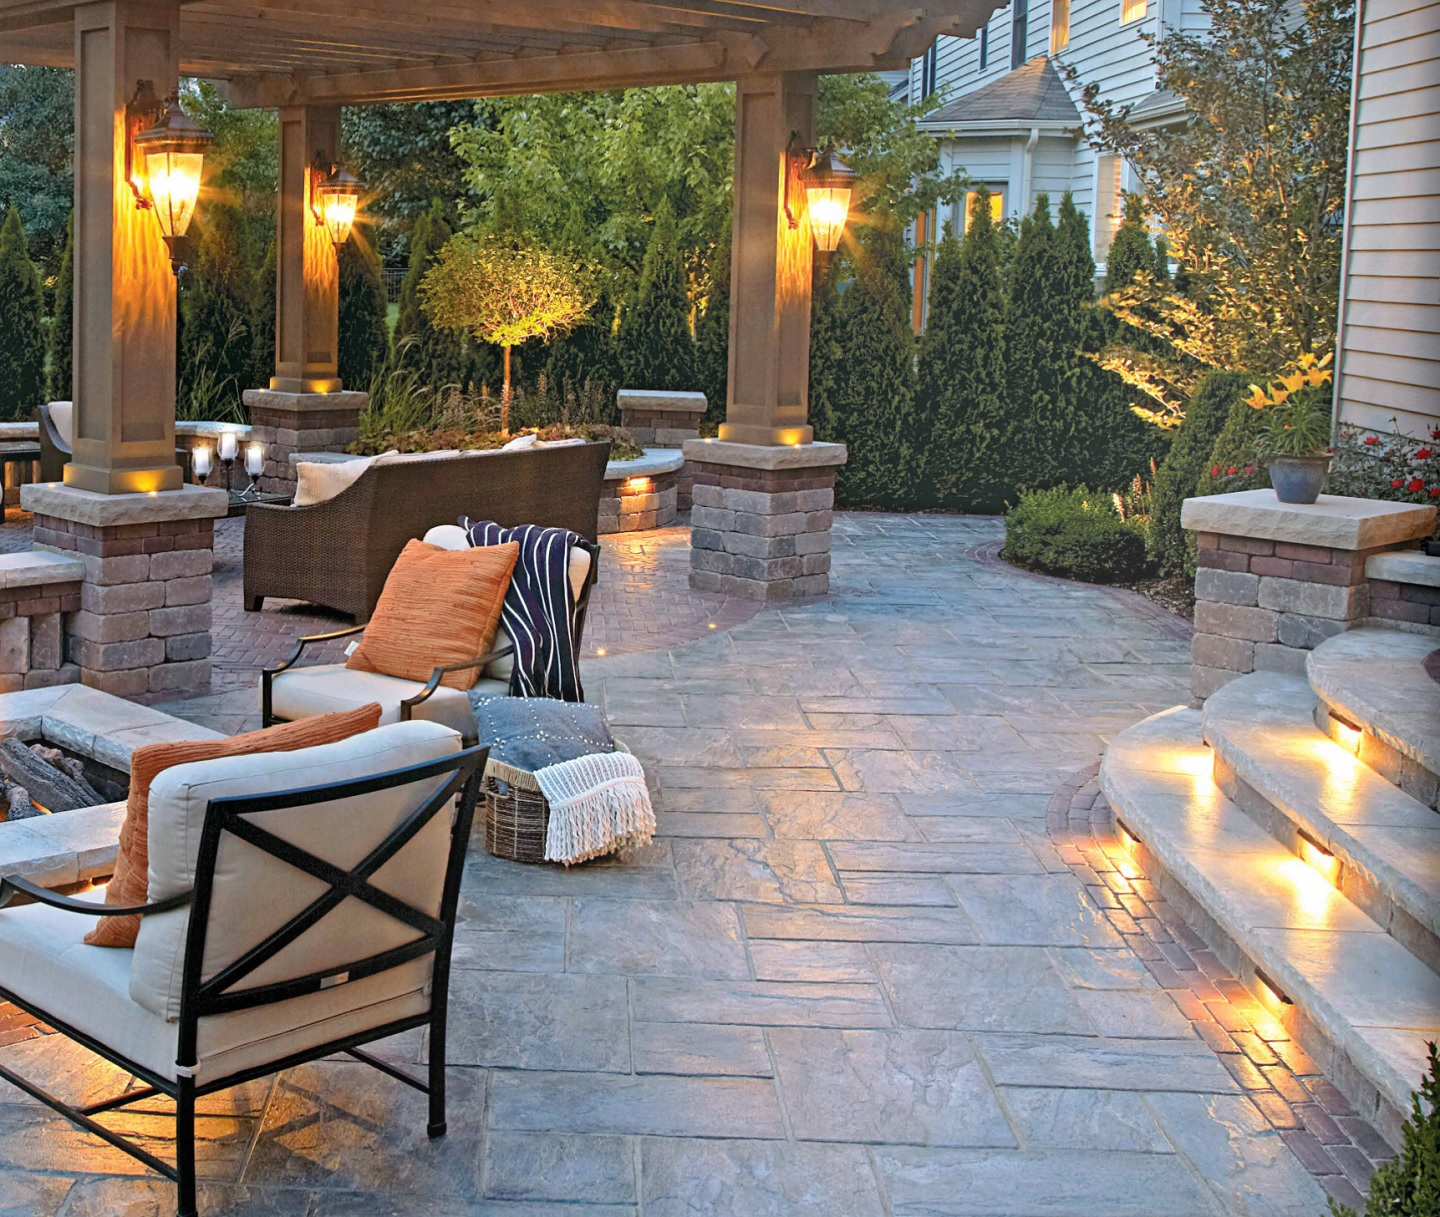 Pergola and landscape lighting in Macomb Township, MI